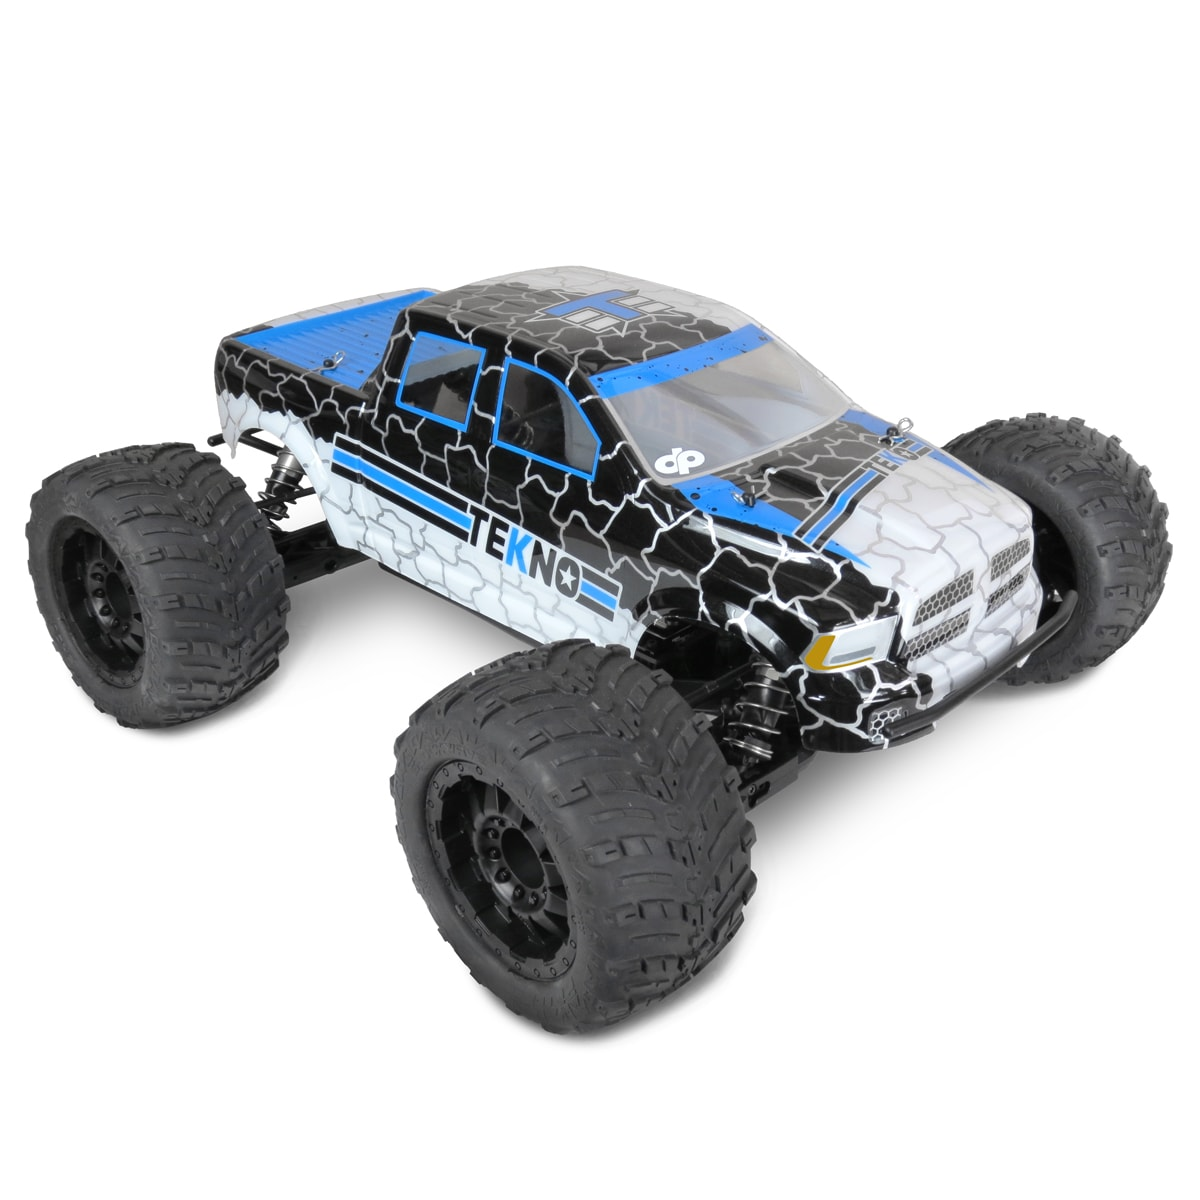 Tekno RC's New MT410 1/10 Monster Truck